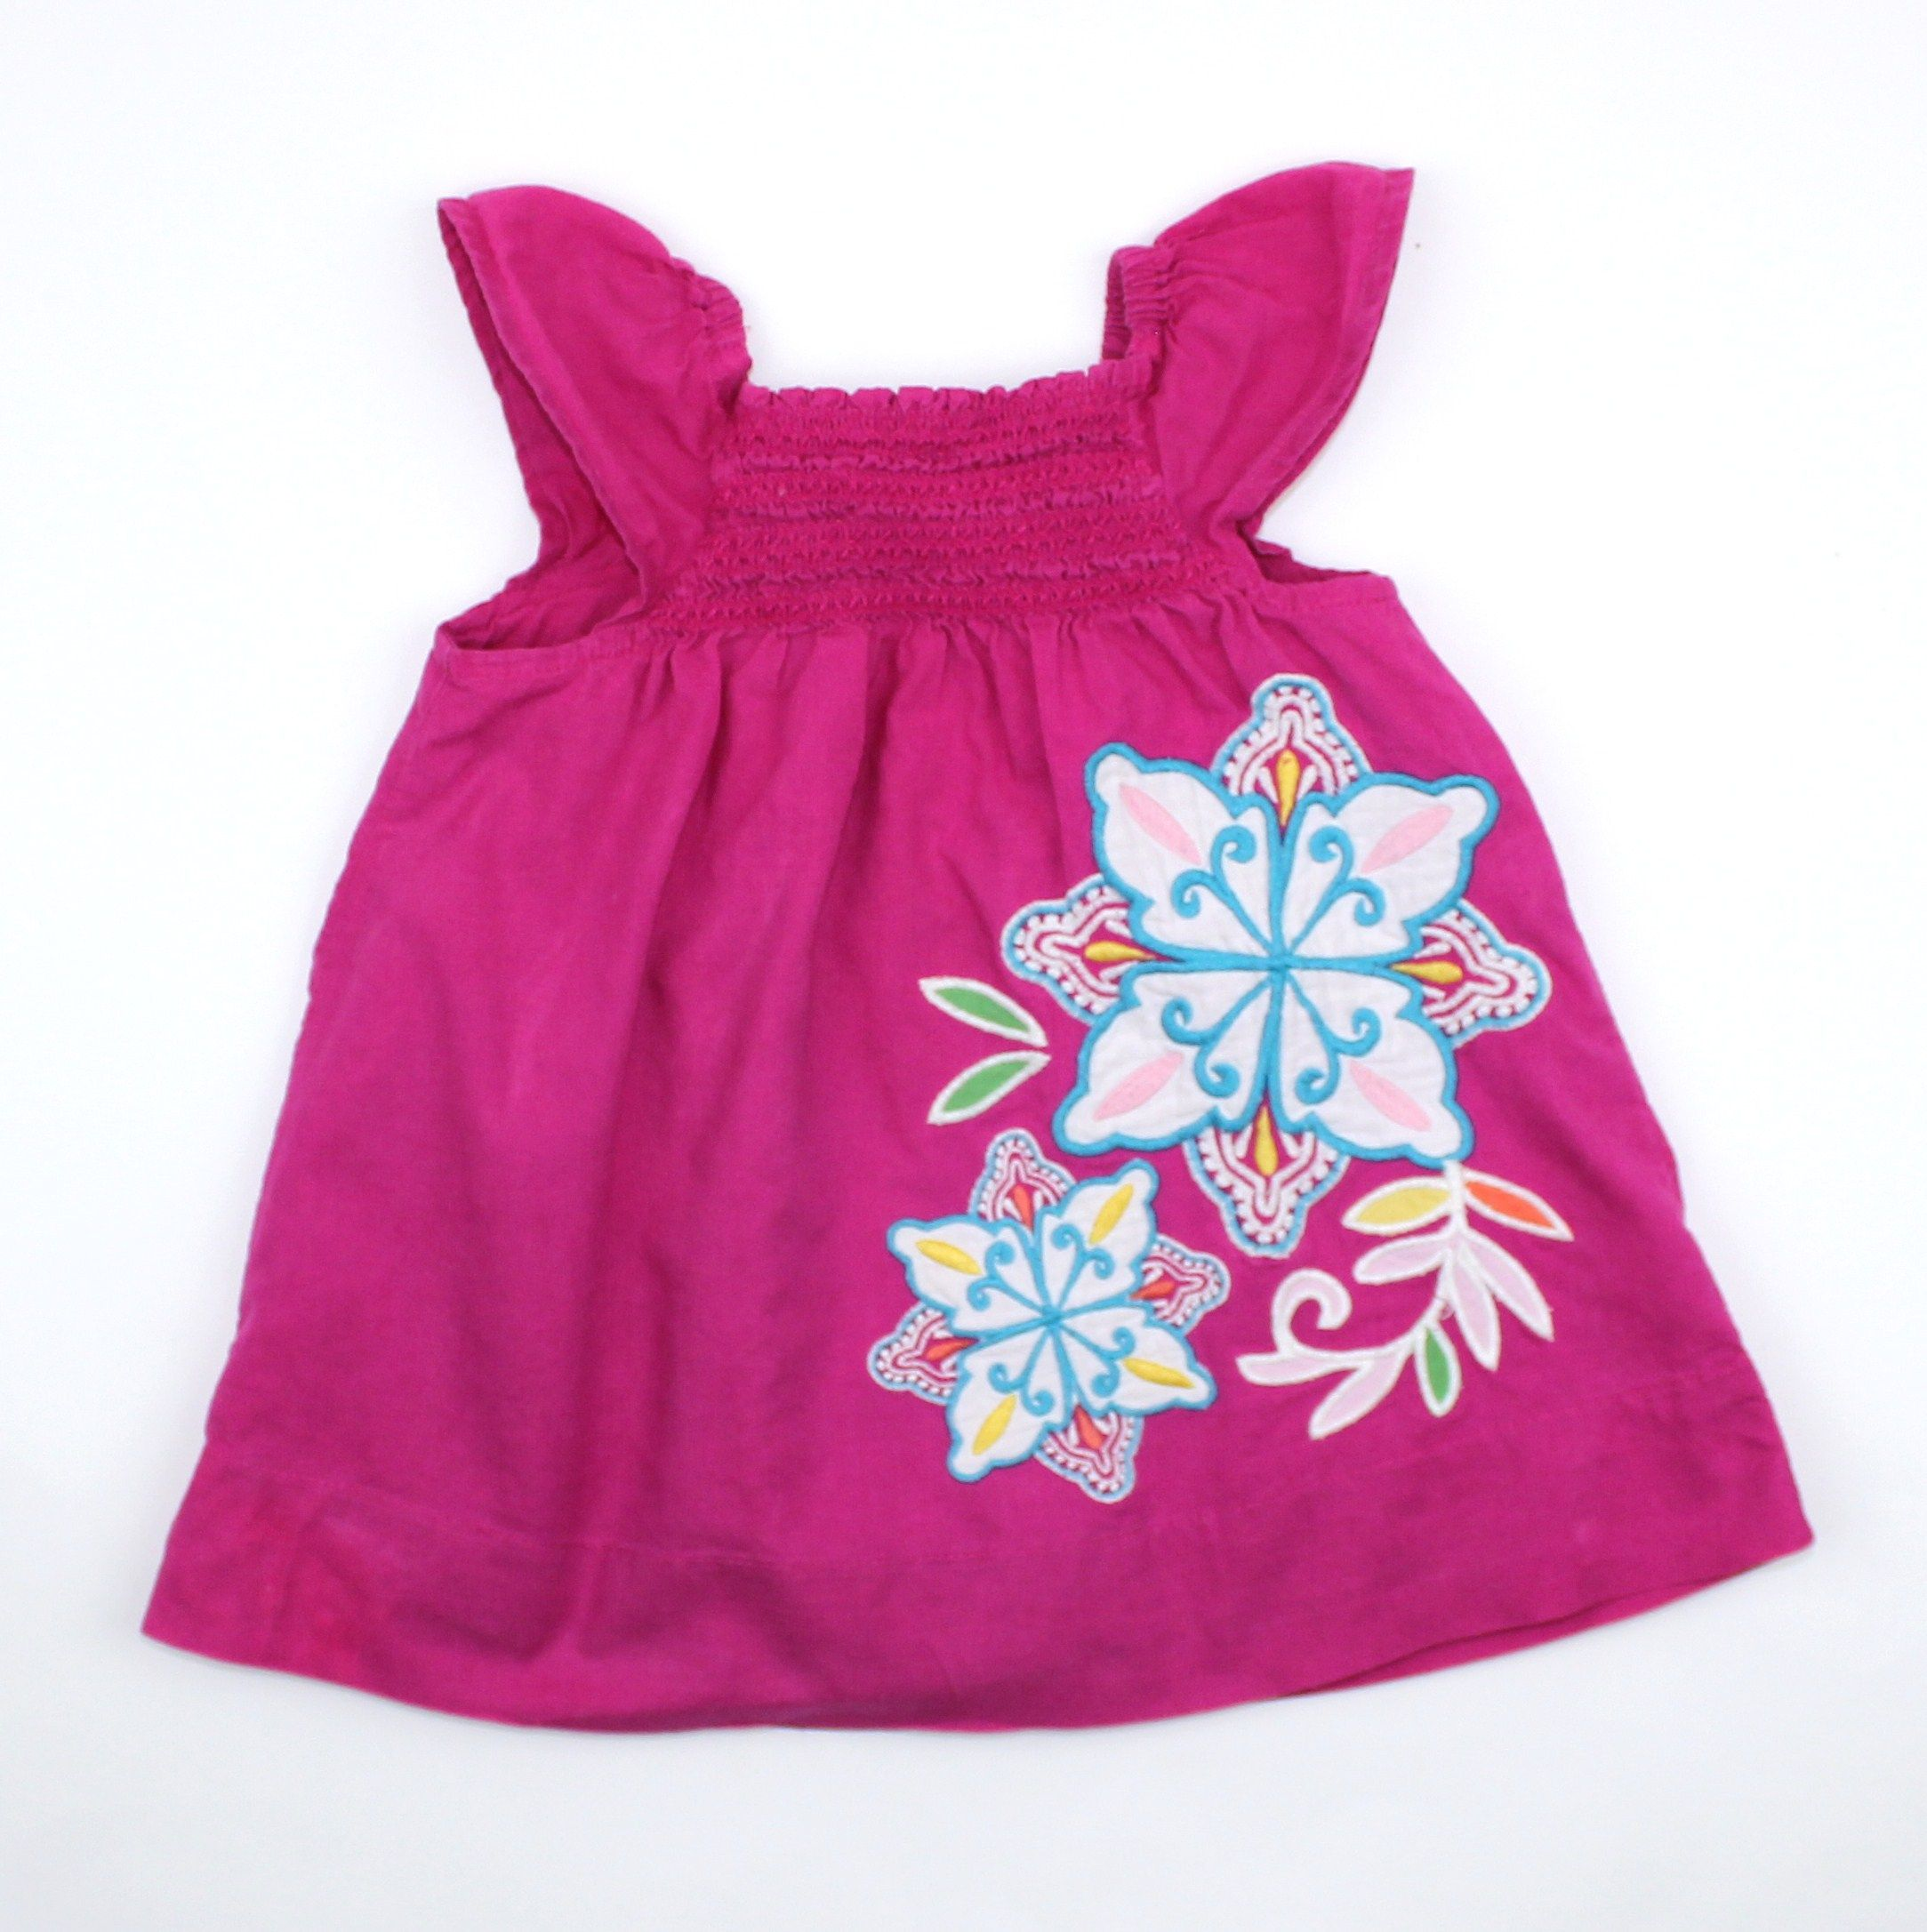 Baby Gap Infant Girls Summer Dress in Size 0 3 Months ly $5 50